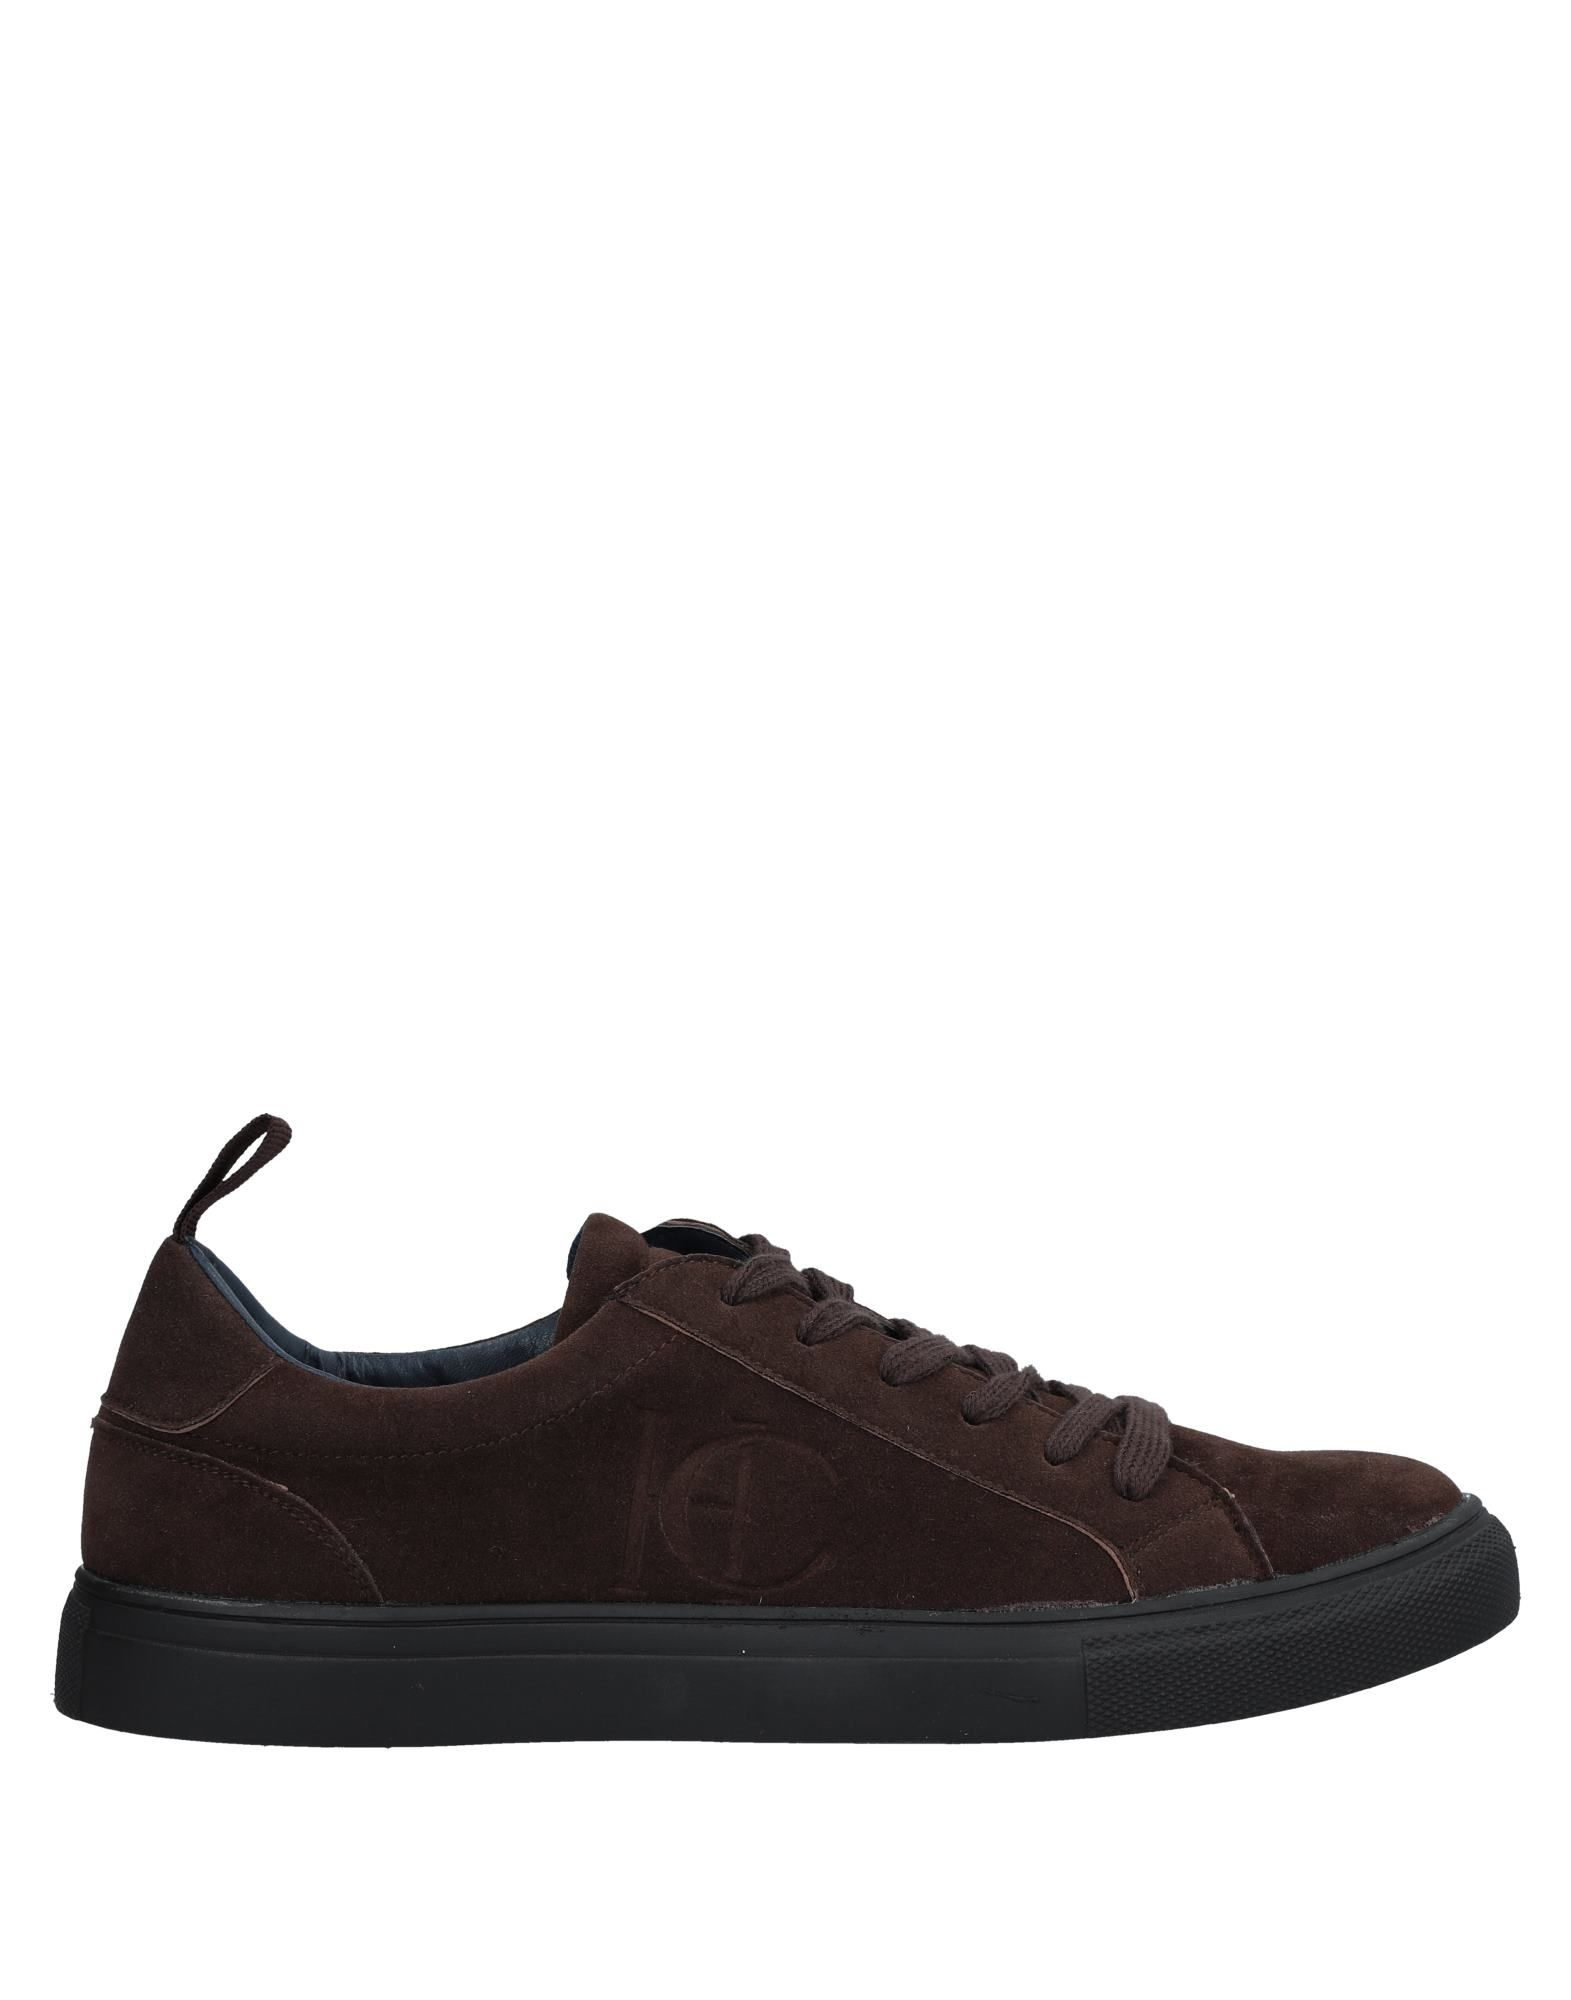 Sneakers Henry Cotton's Uomo - 11533201RT